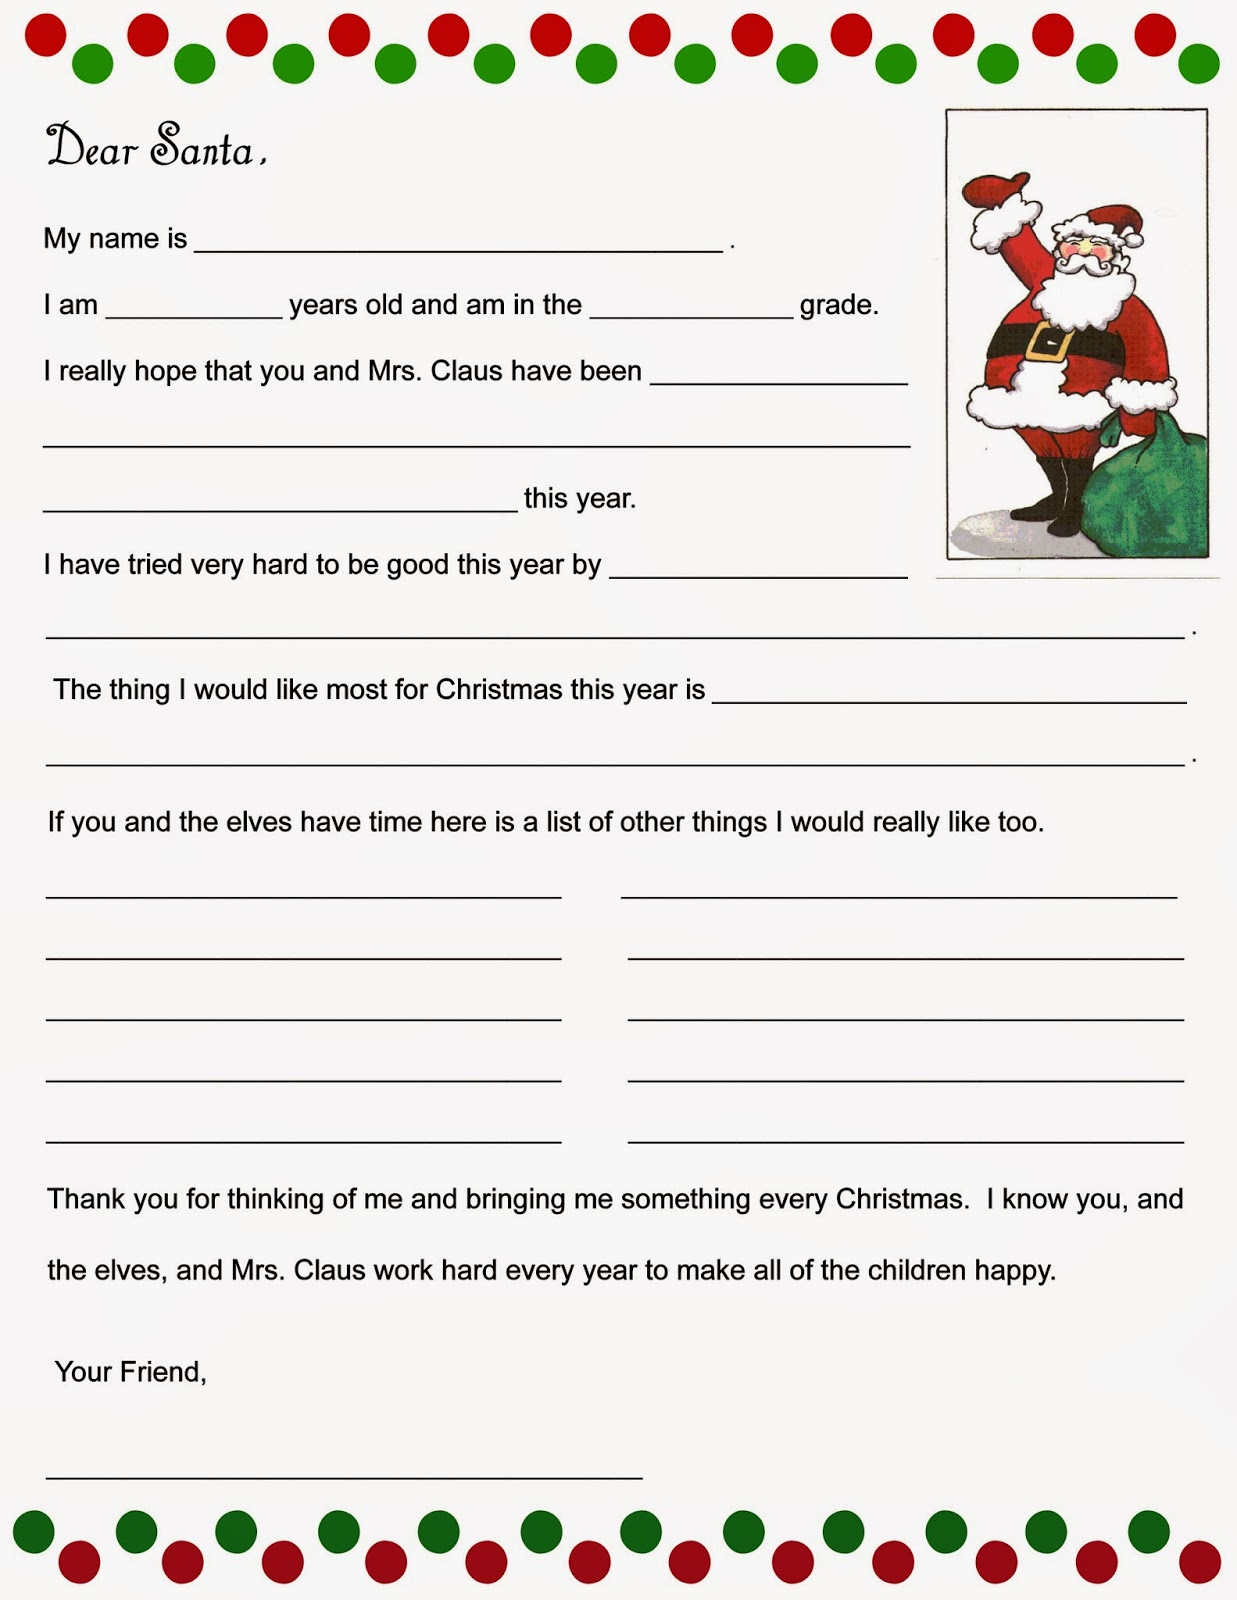 Peaceful image with printable secret santa wish list